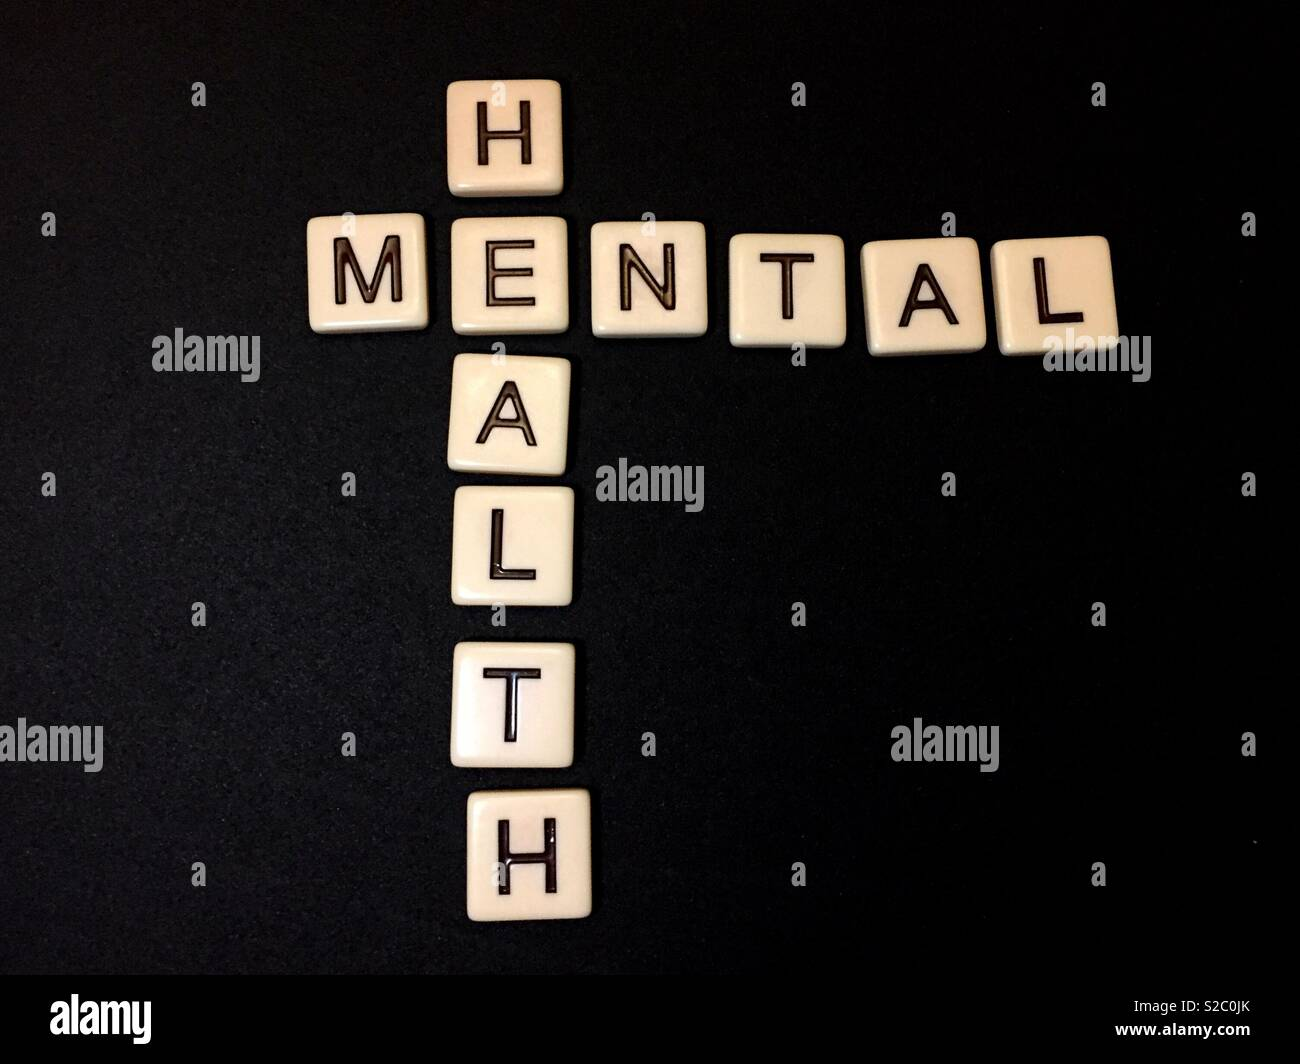 Dealing and coping with mental health - Stock Image